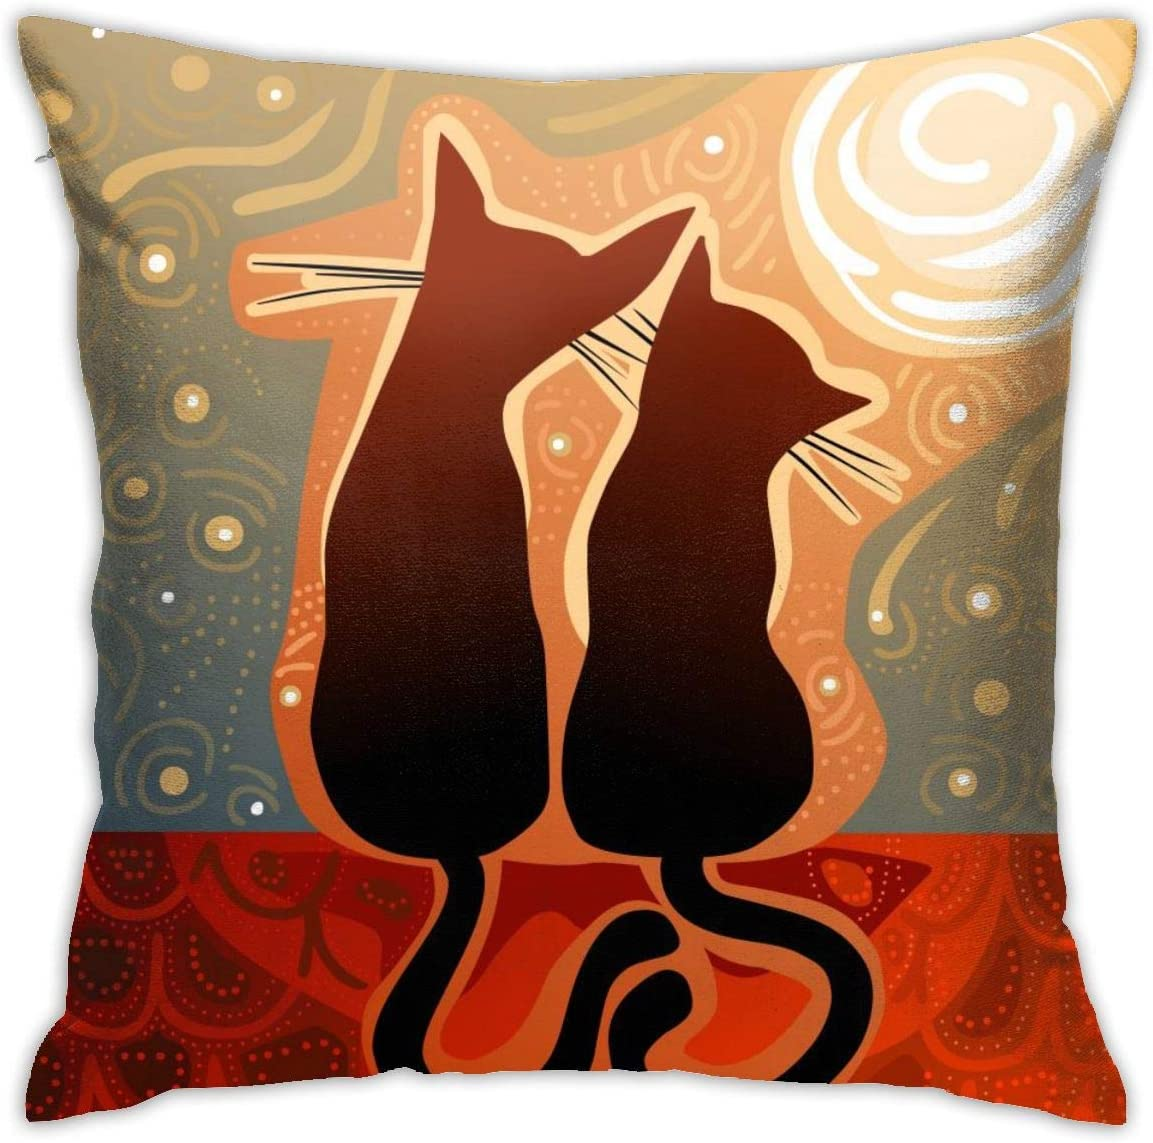 Yaateeh Cats Love Watching Moon Luna Starry Sky Print Throw Pillow Covers Decorative 18x18 Inch Pillowcase Square Cushion Cases for Home Sofa Bedroom Livingroom